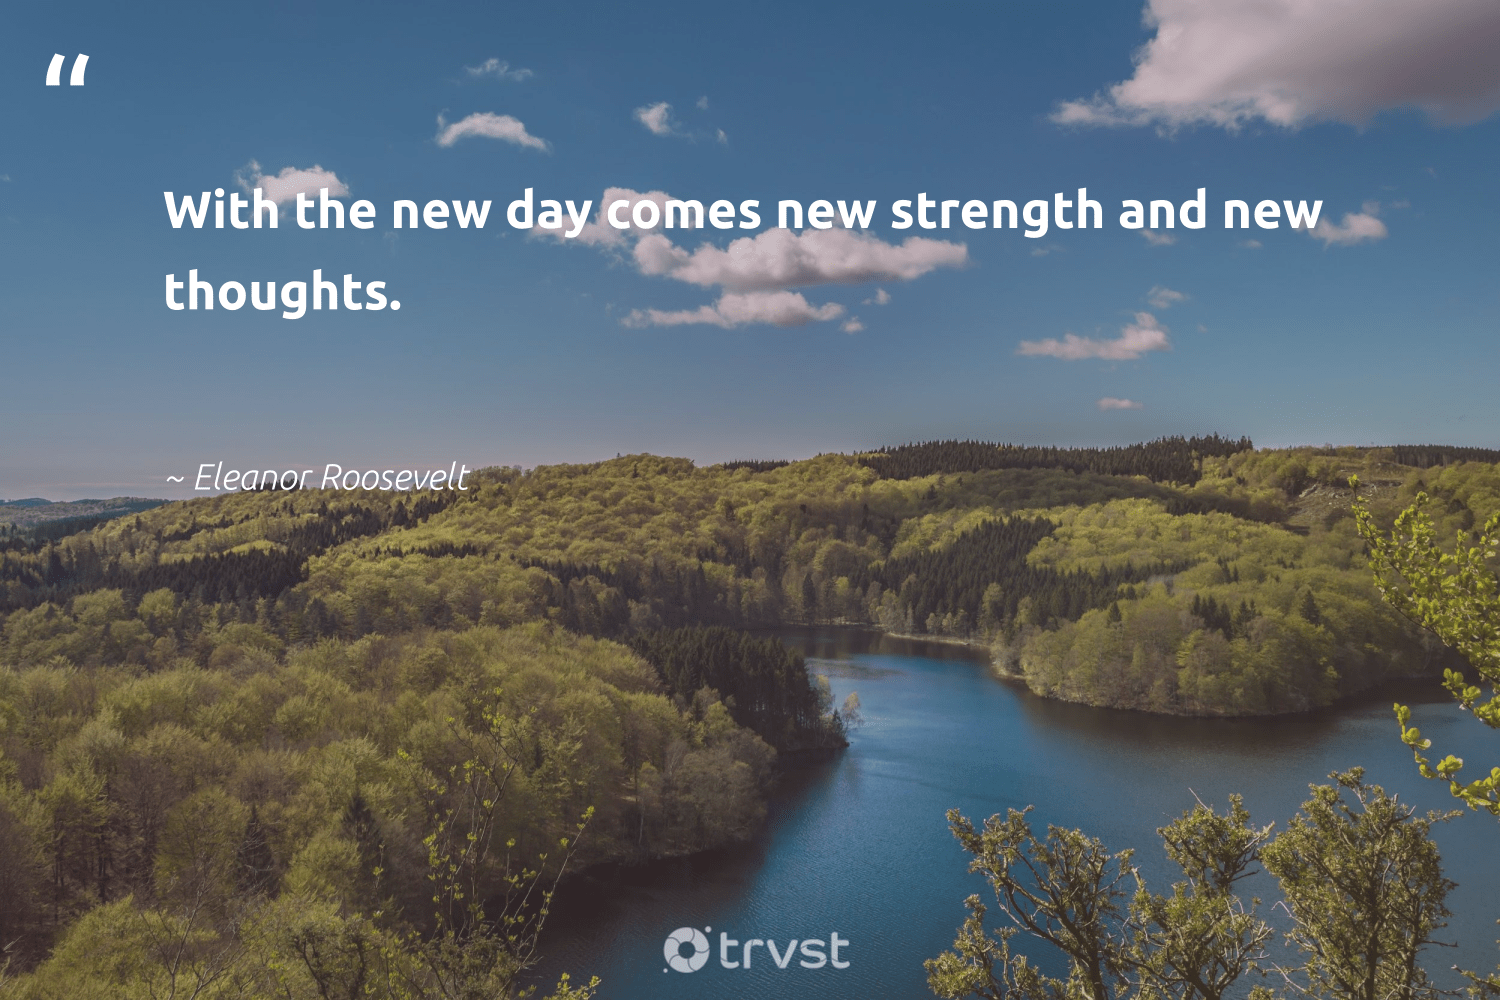 """With the new day comes new strength and new thoughts.""  - Eleanor Roosevelt #trvst #quotes #softskills #socialimpact #nevergiveup #dogood #futureofwork #dotherightthing #begreat #takeaction #thinkgreen #planetearthfirst"